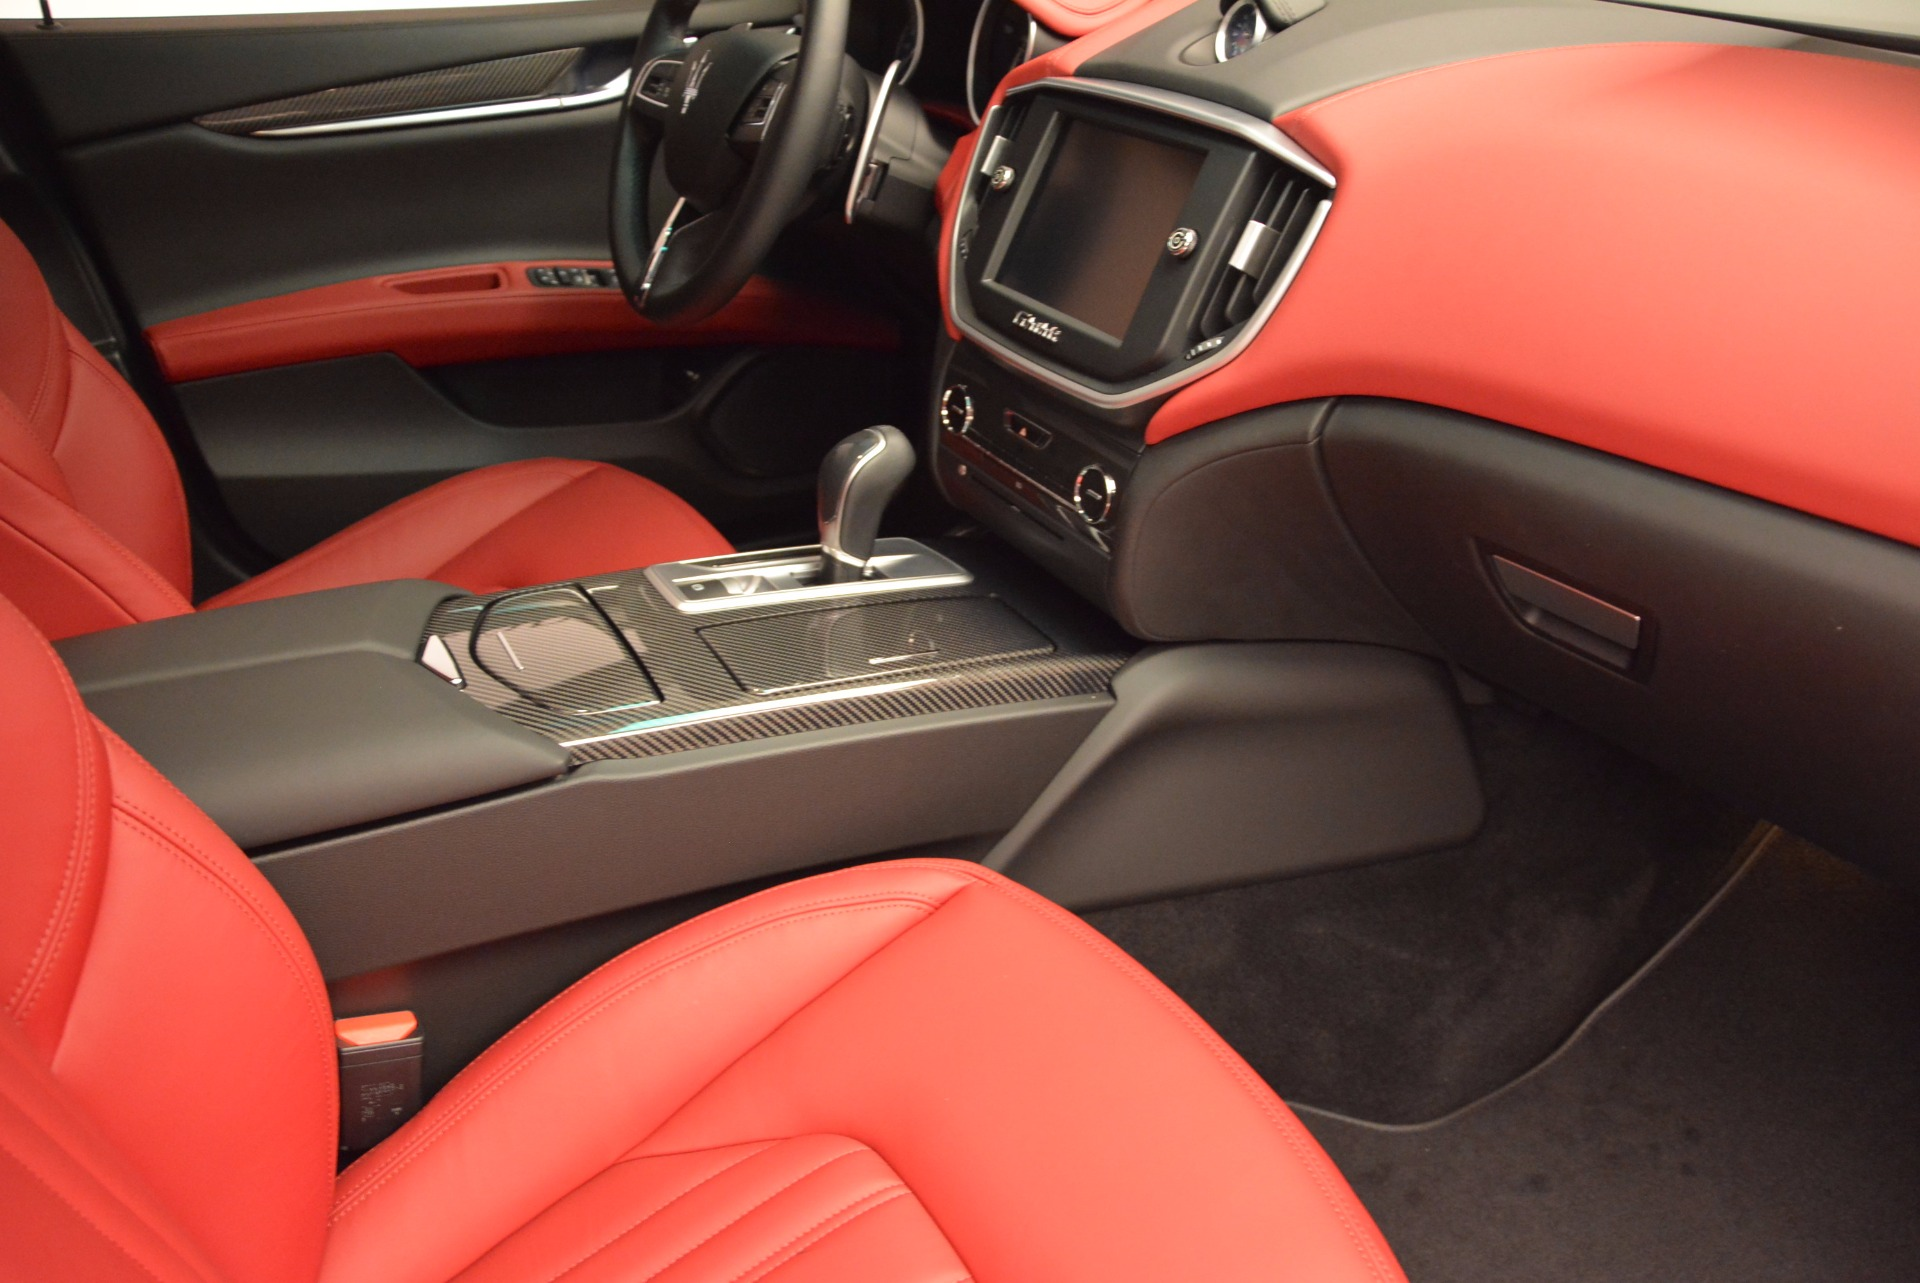 Used 2015 Maserati Ghibli S Q4 For Sale In Westport, CT 1290_p20